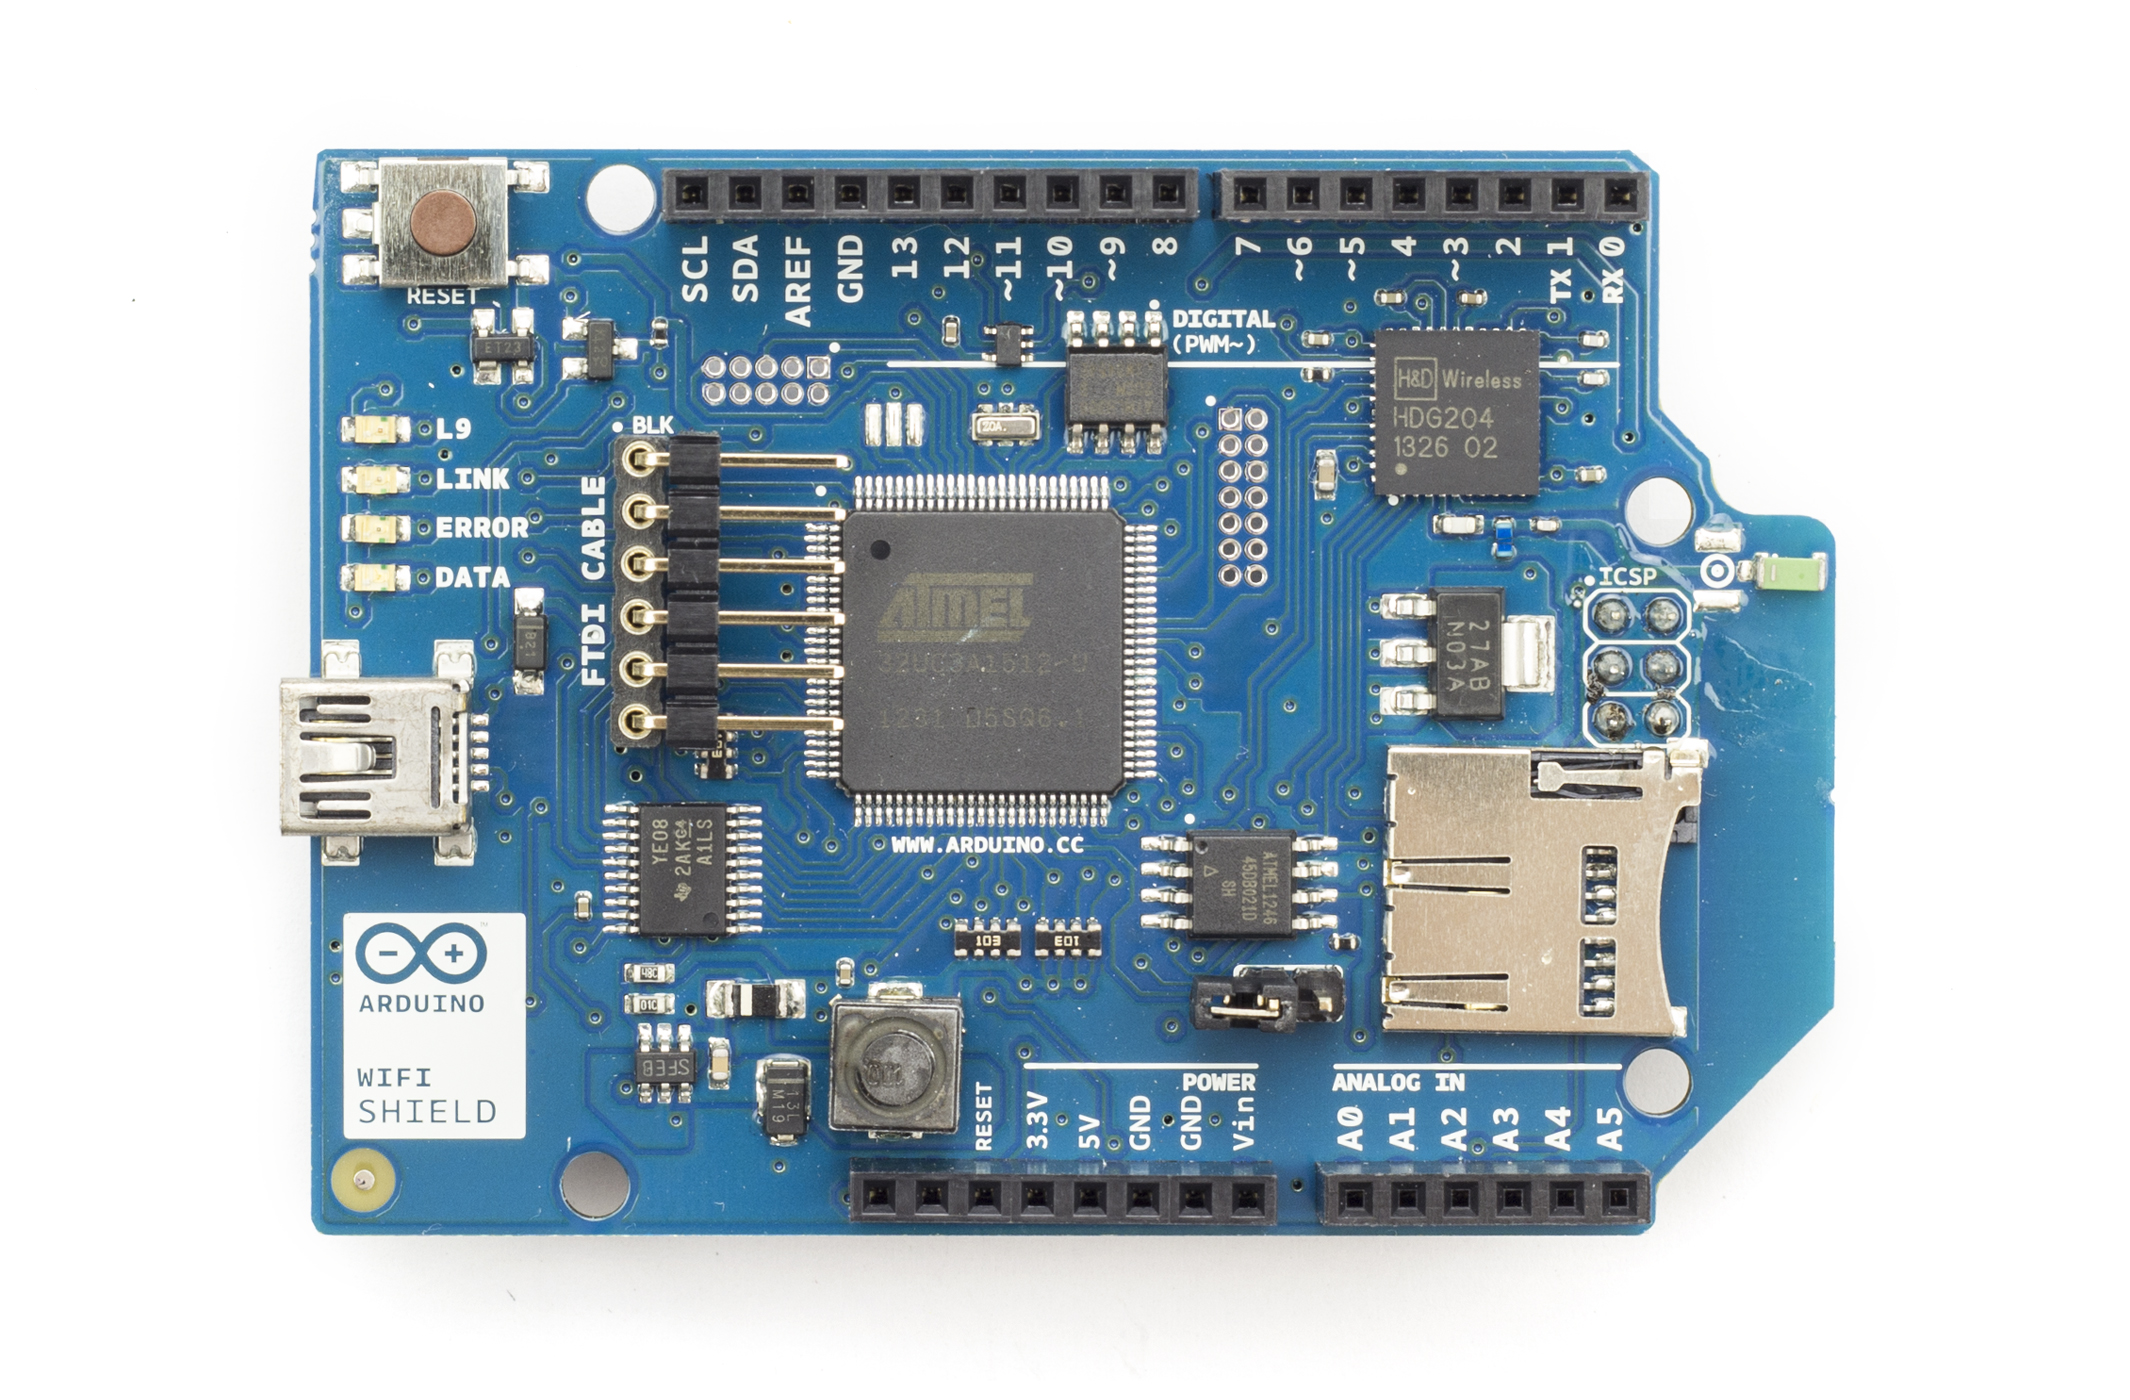 Arduino.cc download package